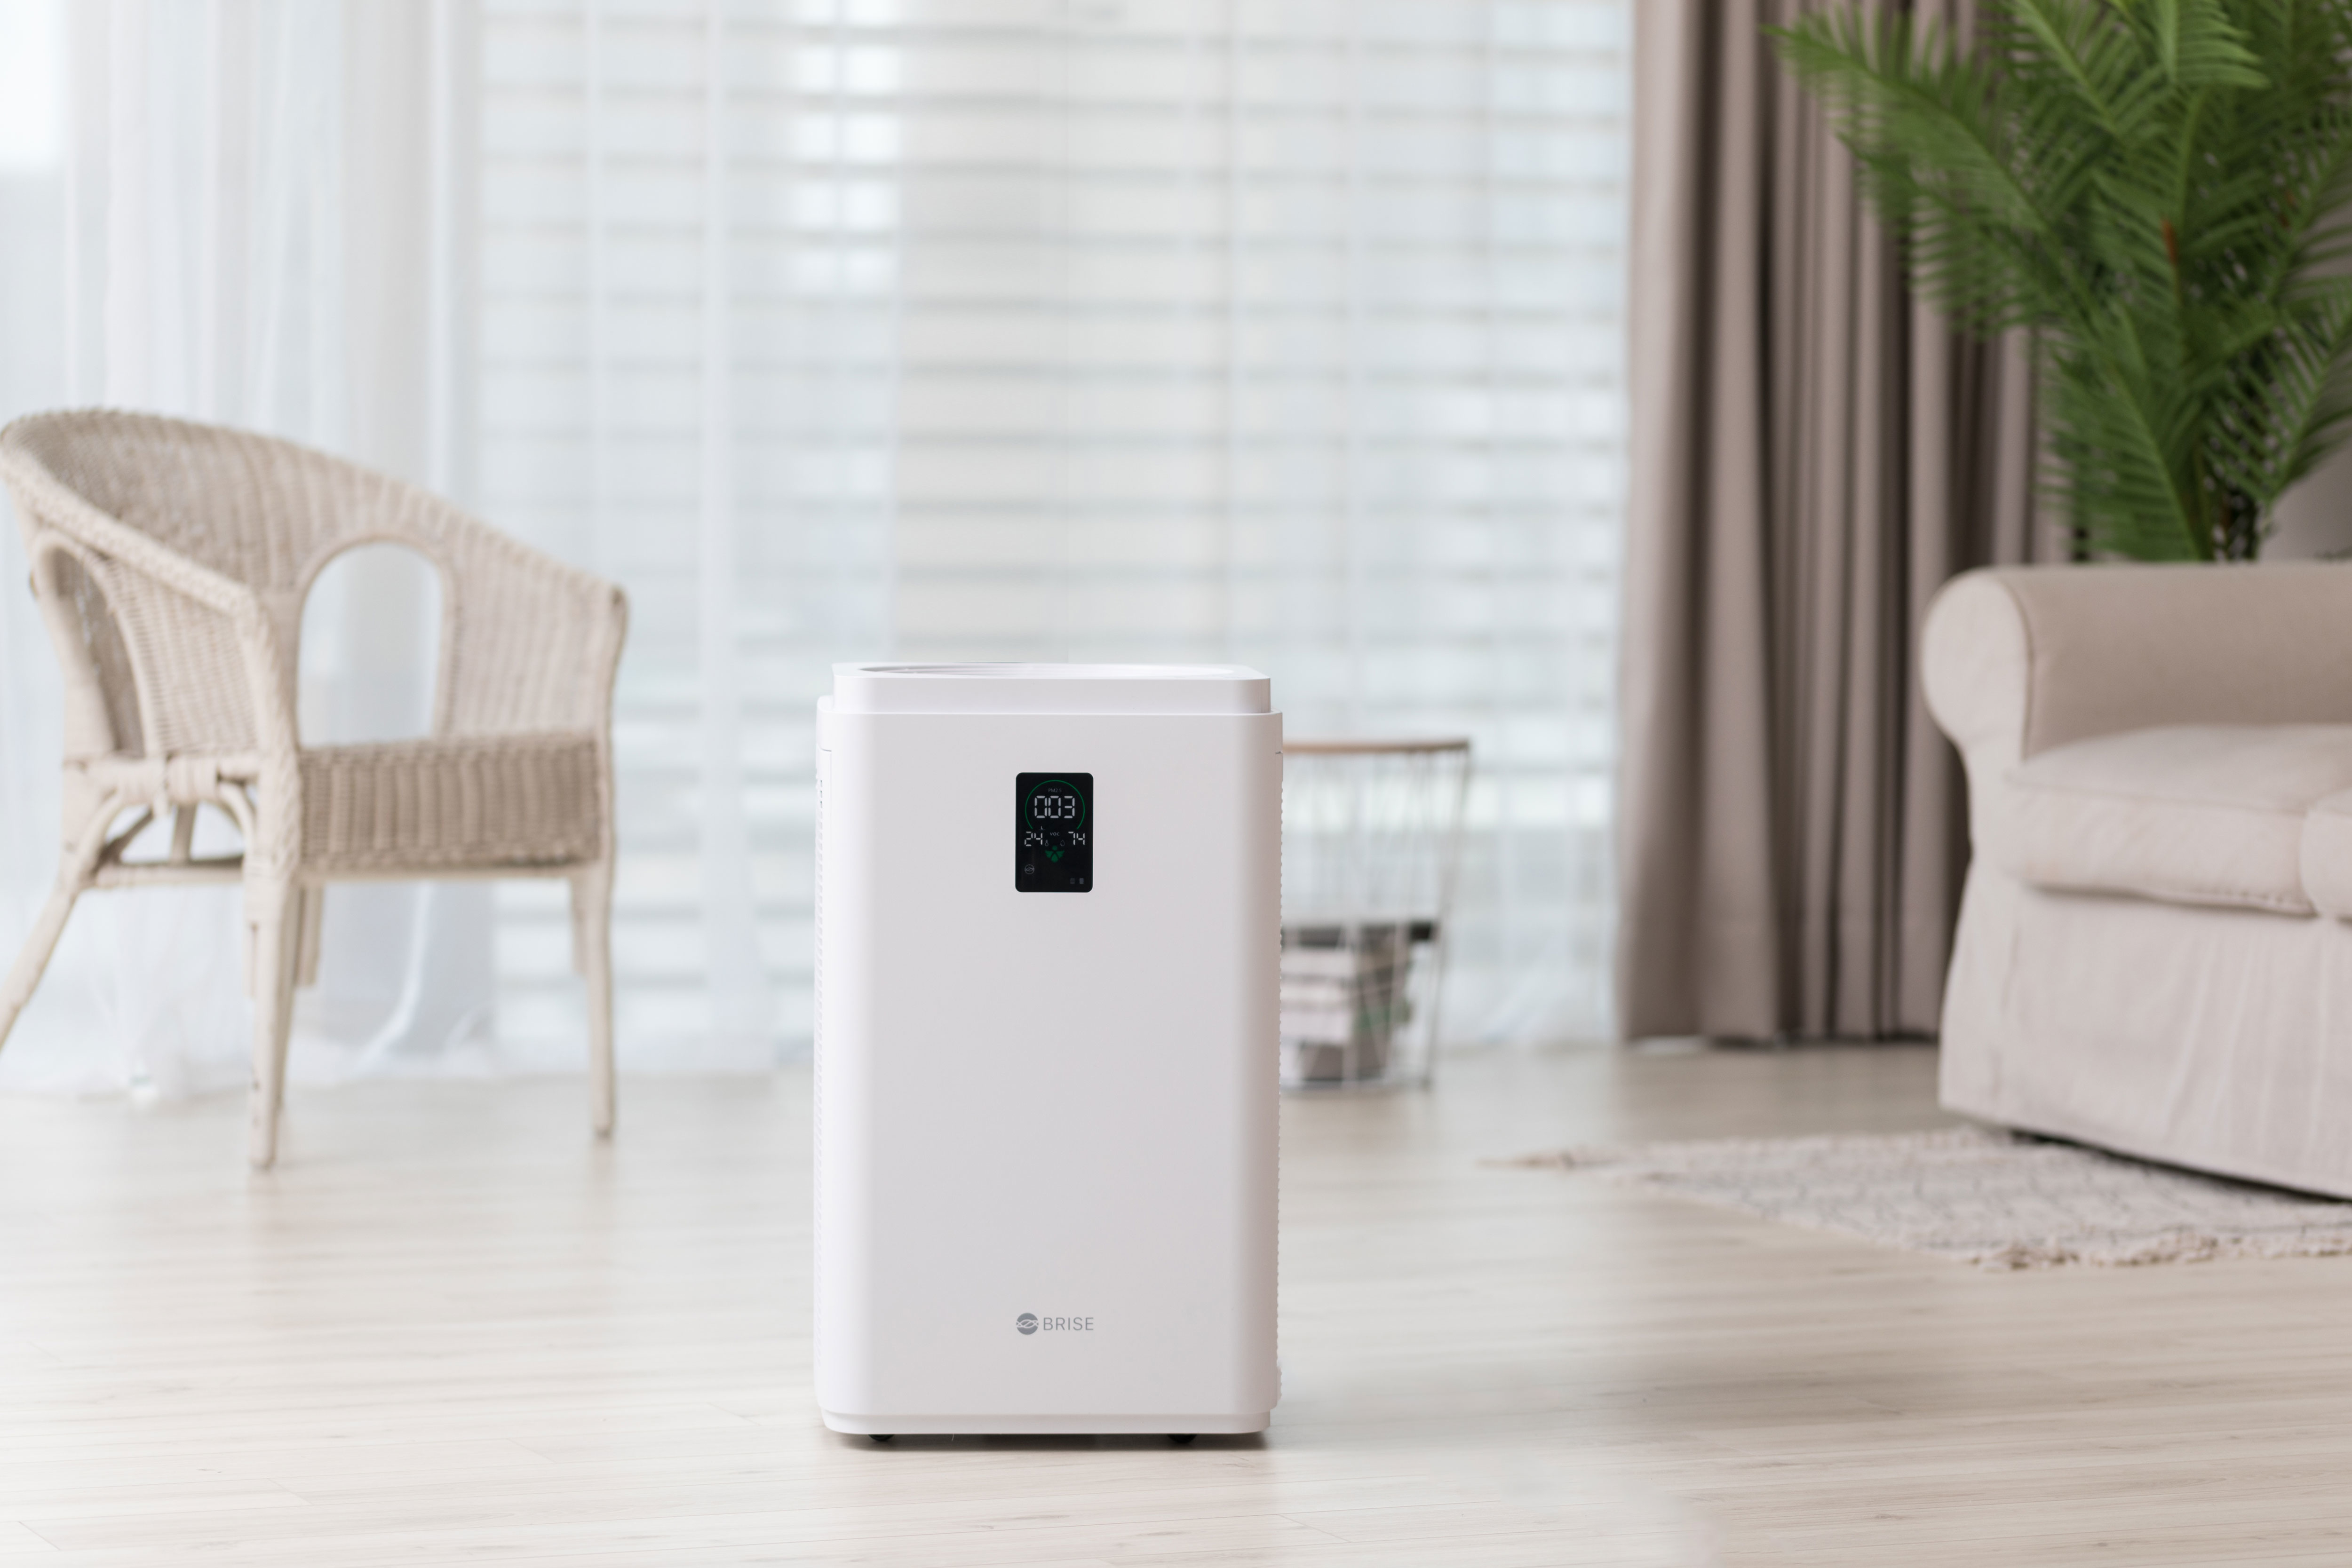 Air Purifiers, Clean Air Delivery Rate, Air pollution, air, Breathing, Inhalation, Pollutant, Pollution, Film, Physician, Film, furniture, product, home appliance, table, small appliance